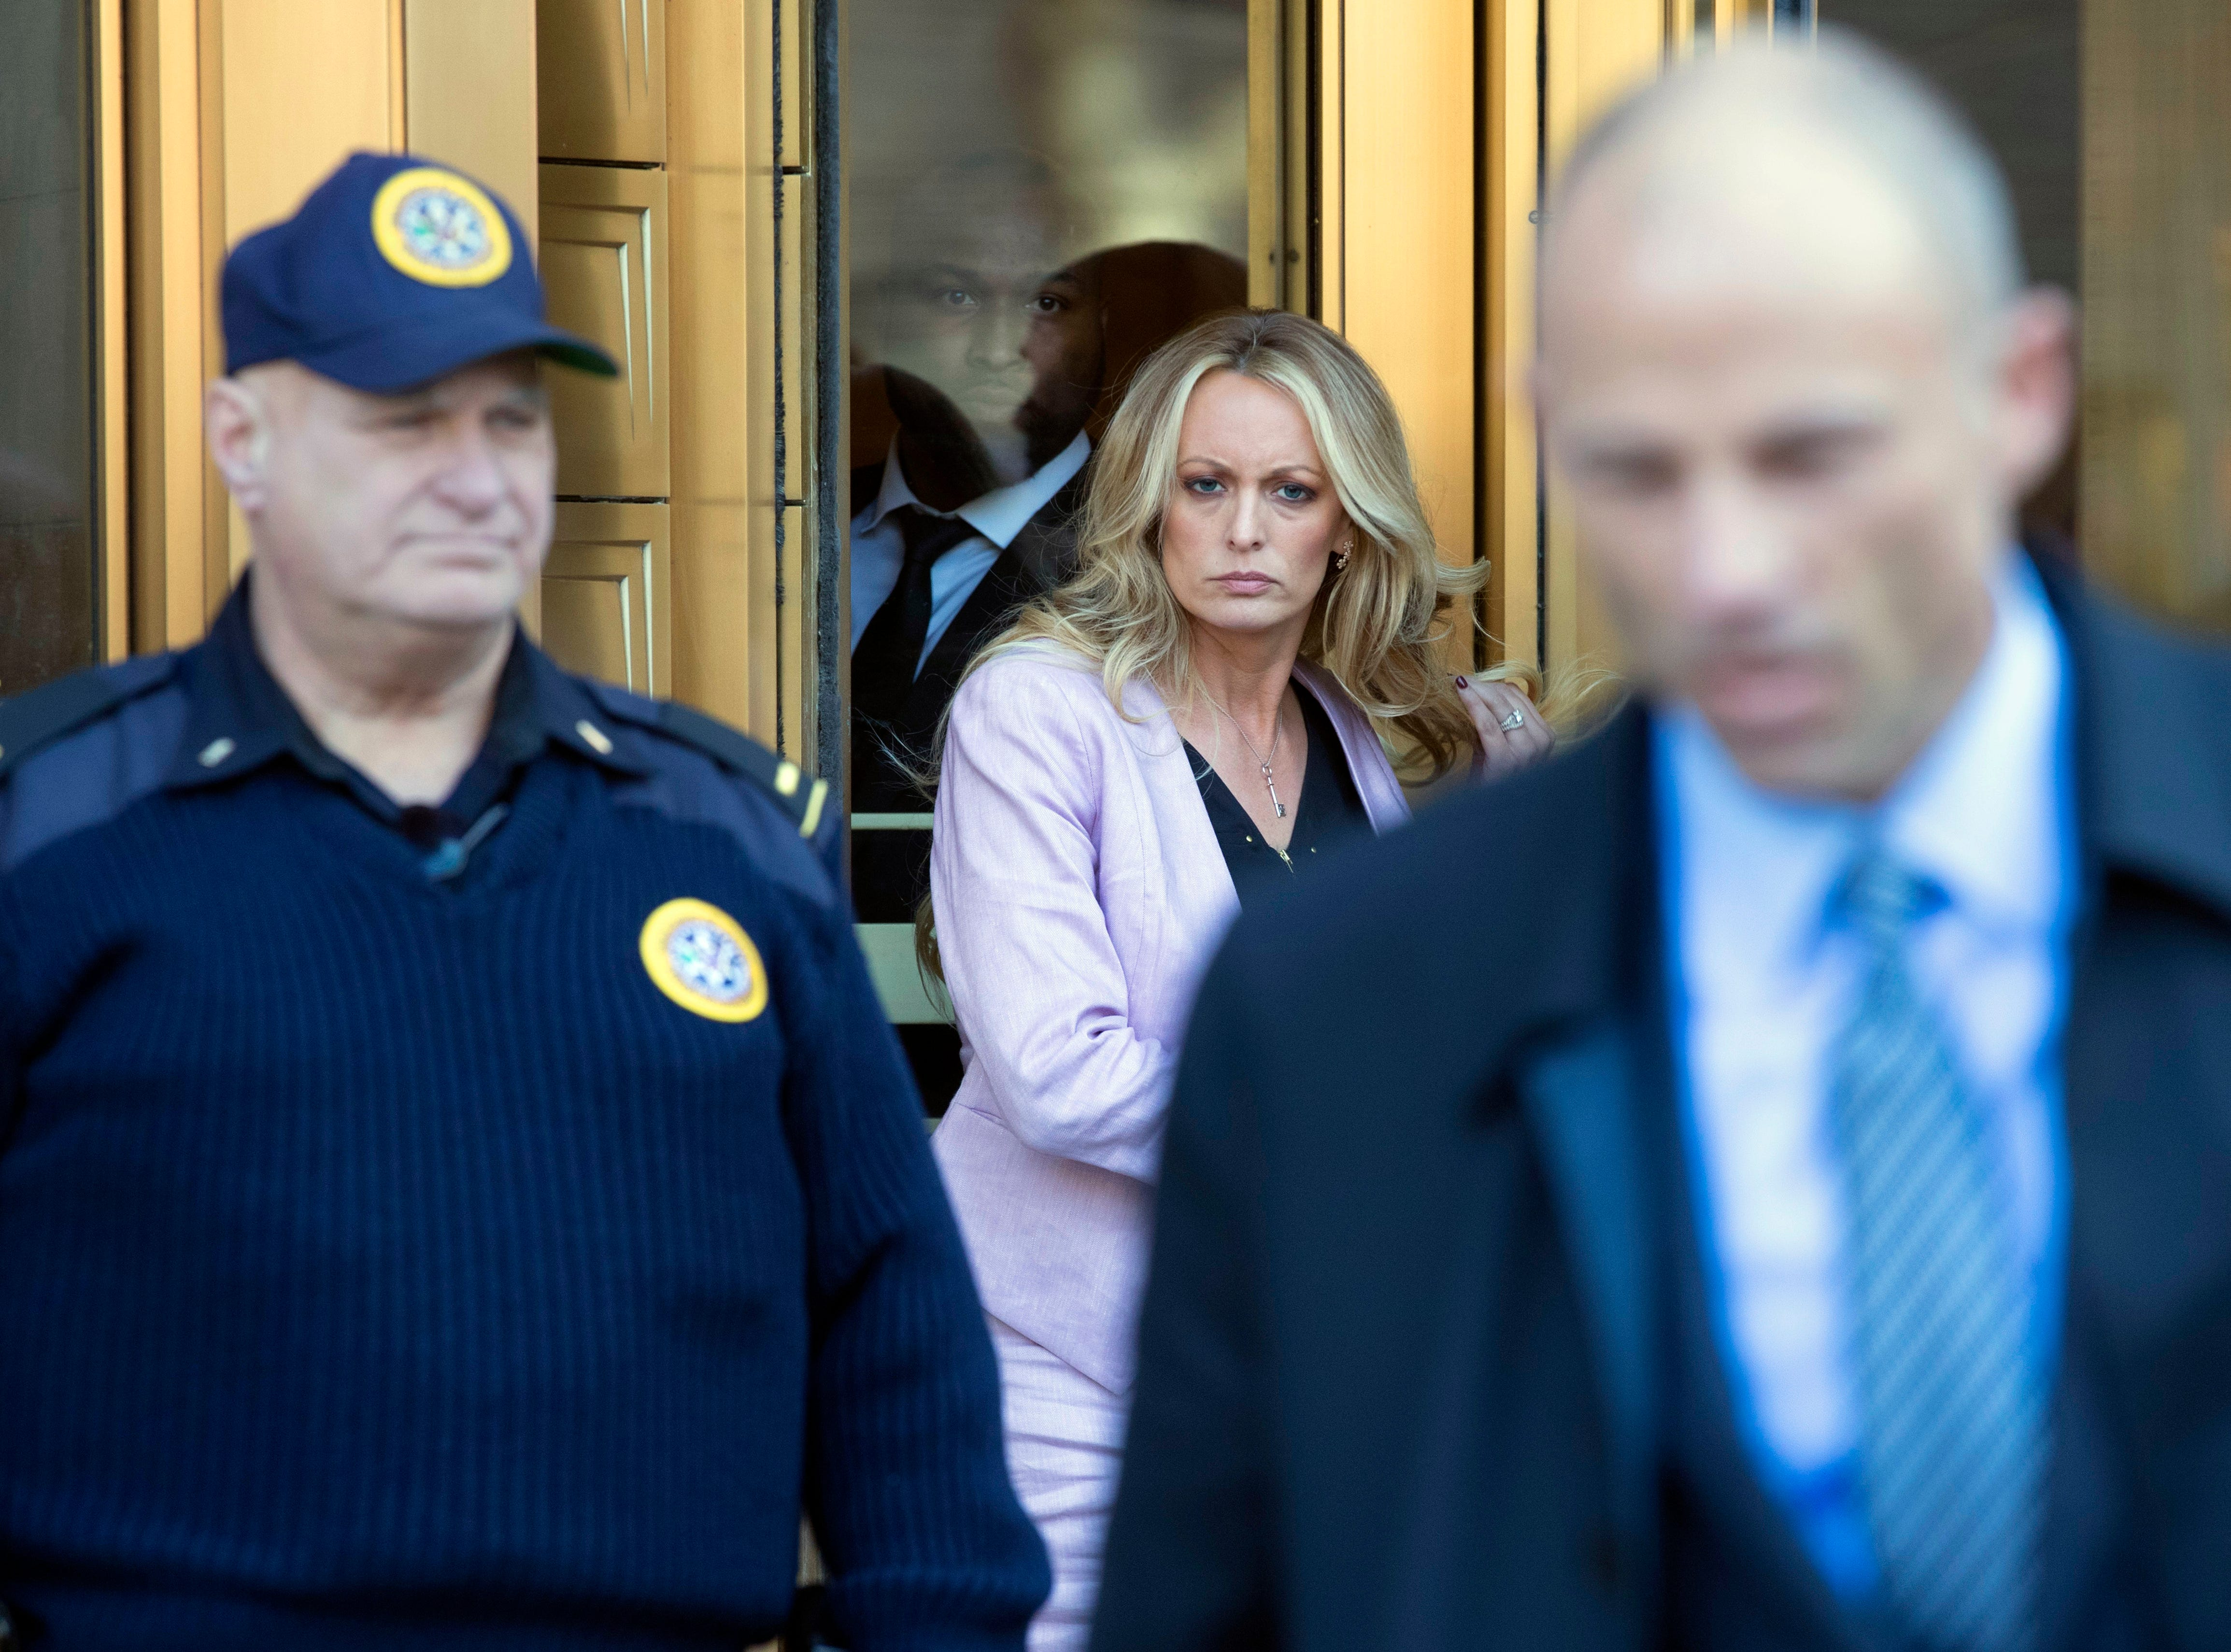 April 16, 2018: Adult film actress Stormy Daniels, center, follows her attorney Michael Avenatti, right, as she leaves federal court in New York.  A U.S. judge listened to more arguments about President Donald Trump's extraordinary request that he be allowed to review records seized from his lawyer, Michael Cohen, office as part of a criminal investigation before they are examined by prosecutors. The raid at Cohen's apartment, hotel room, office and safety deposit box sought bank records, records on Cohen's dealing in the taxi industry, Cohen's communications with the Trump campaign and information on payments made in 2016 to former Playboy model Karen McDougal and to Daniels.